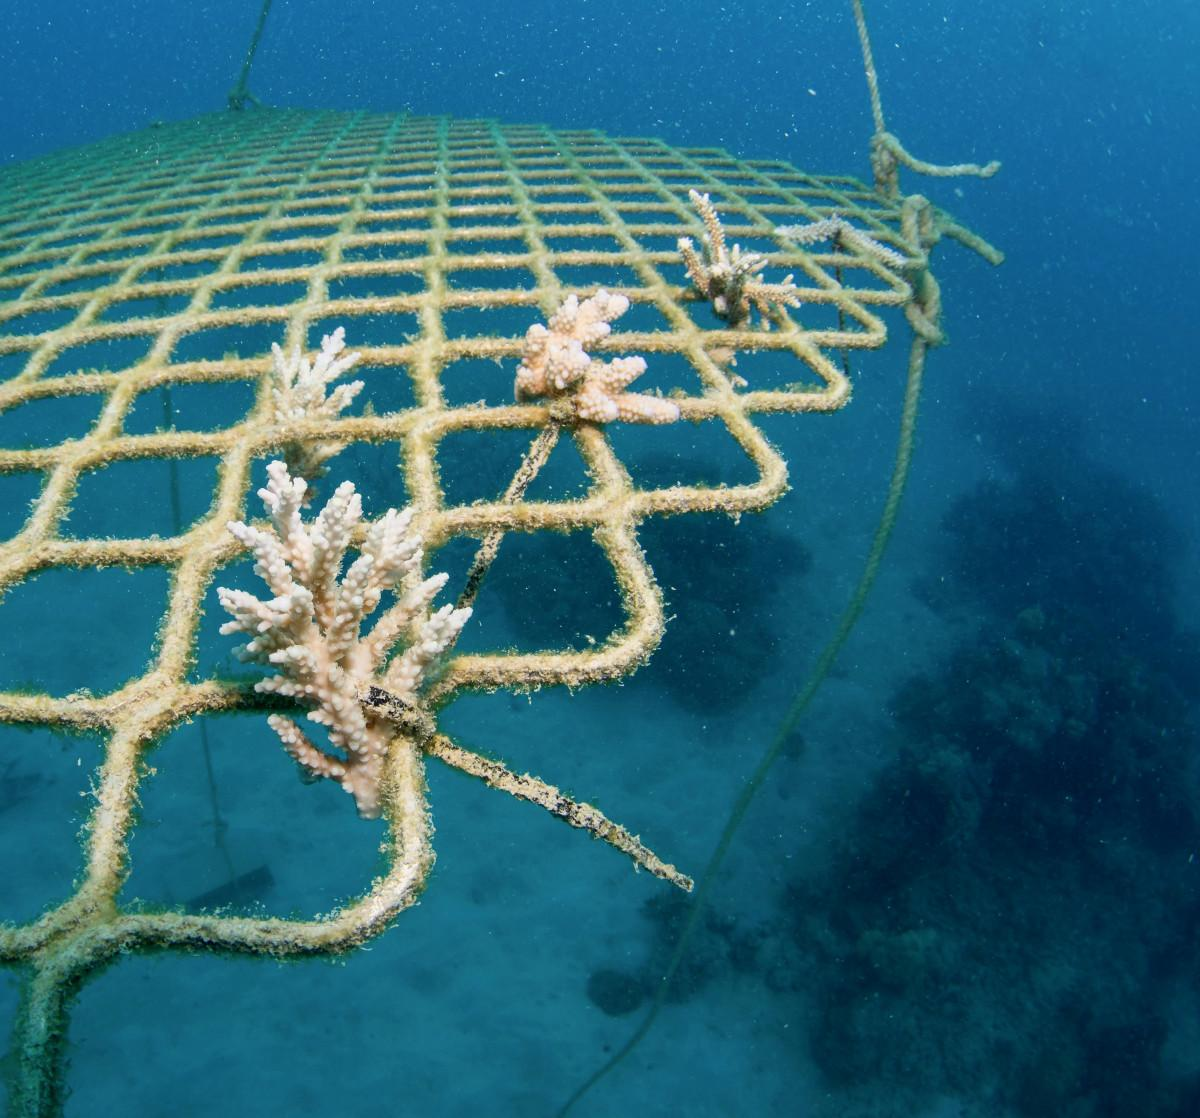 Dive Operators Turn to Reef Restoration on the Great Barrier Reef